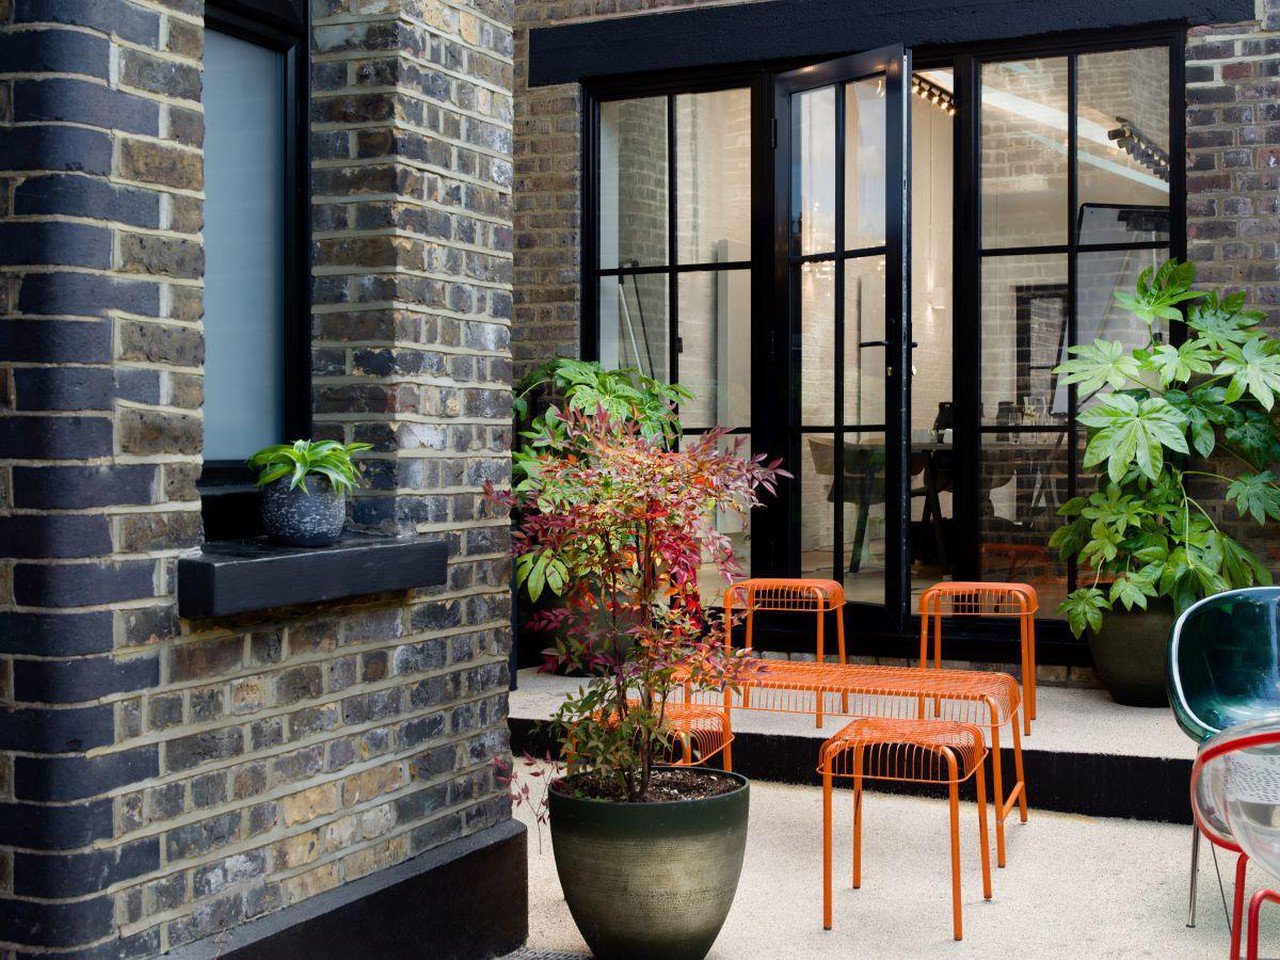 London training rooms Backyard Private Outdoor Courtyard image 0